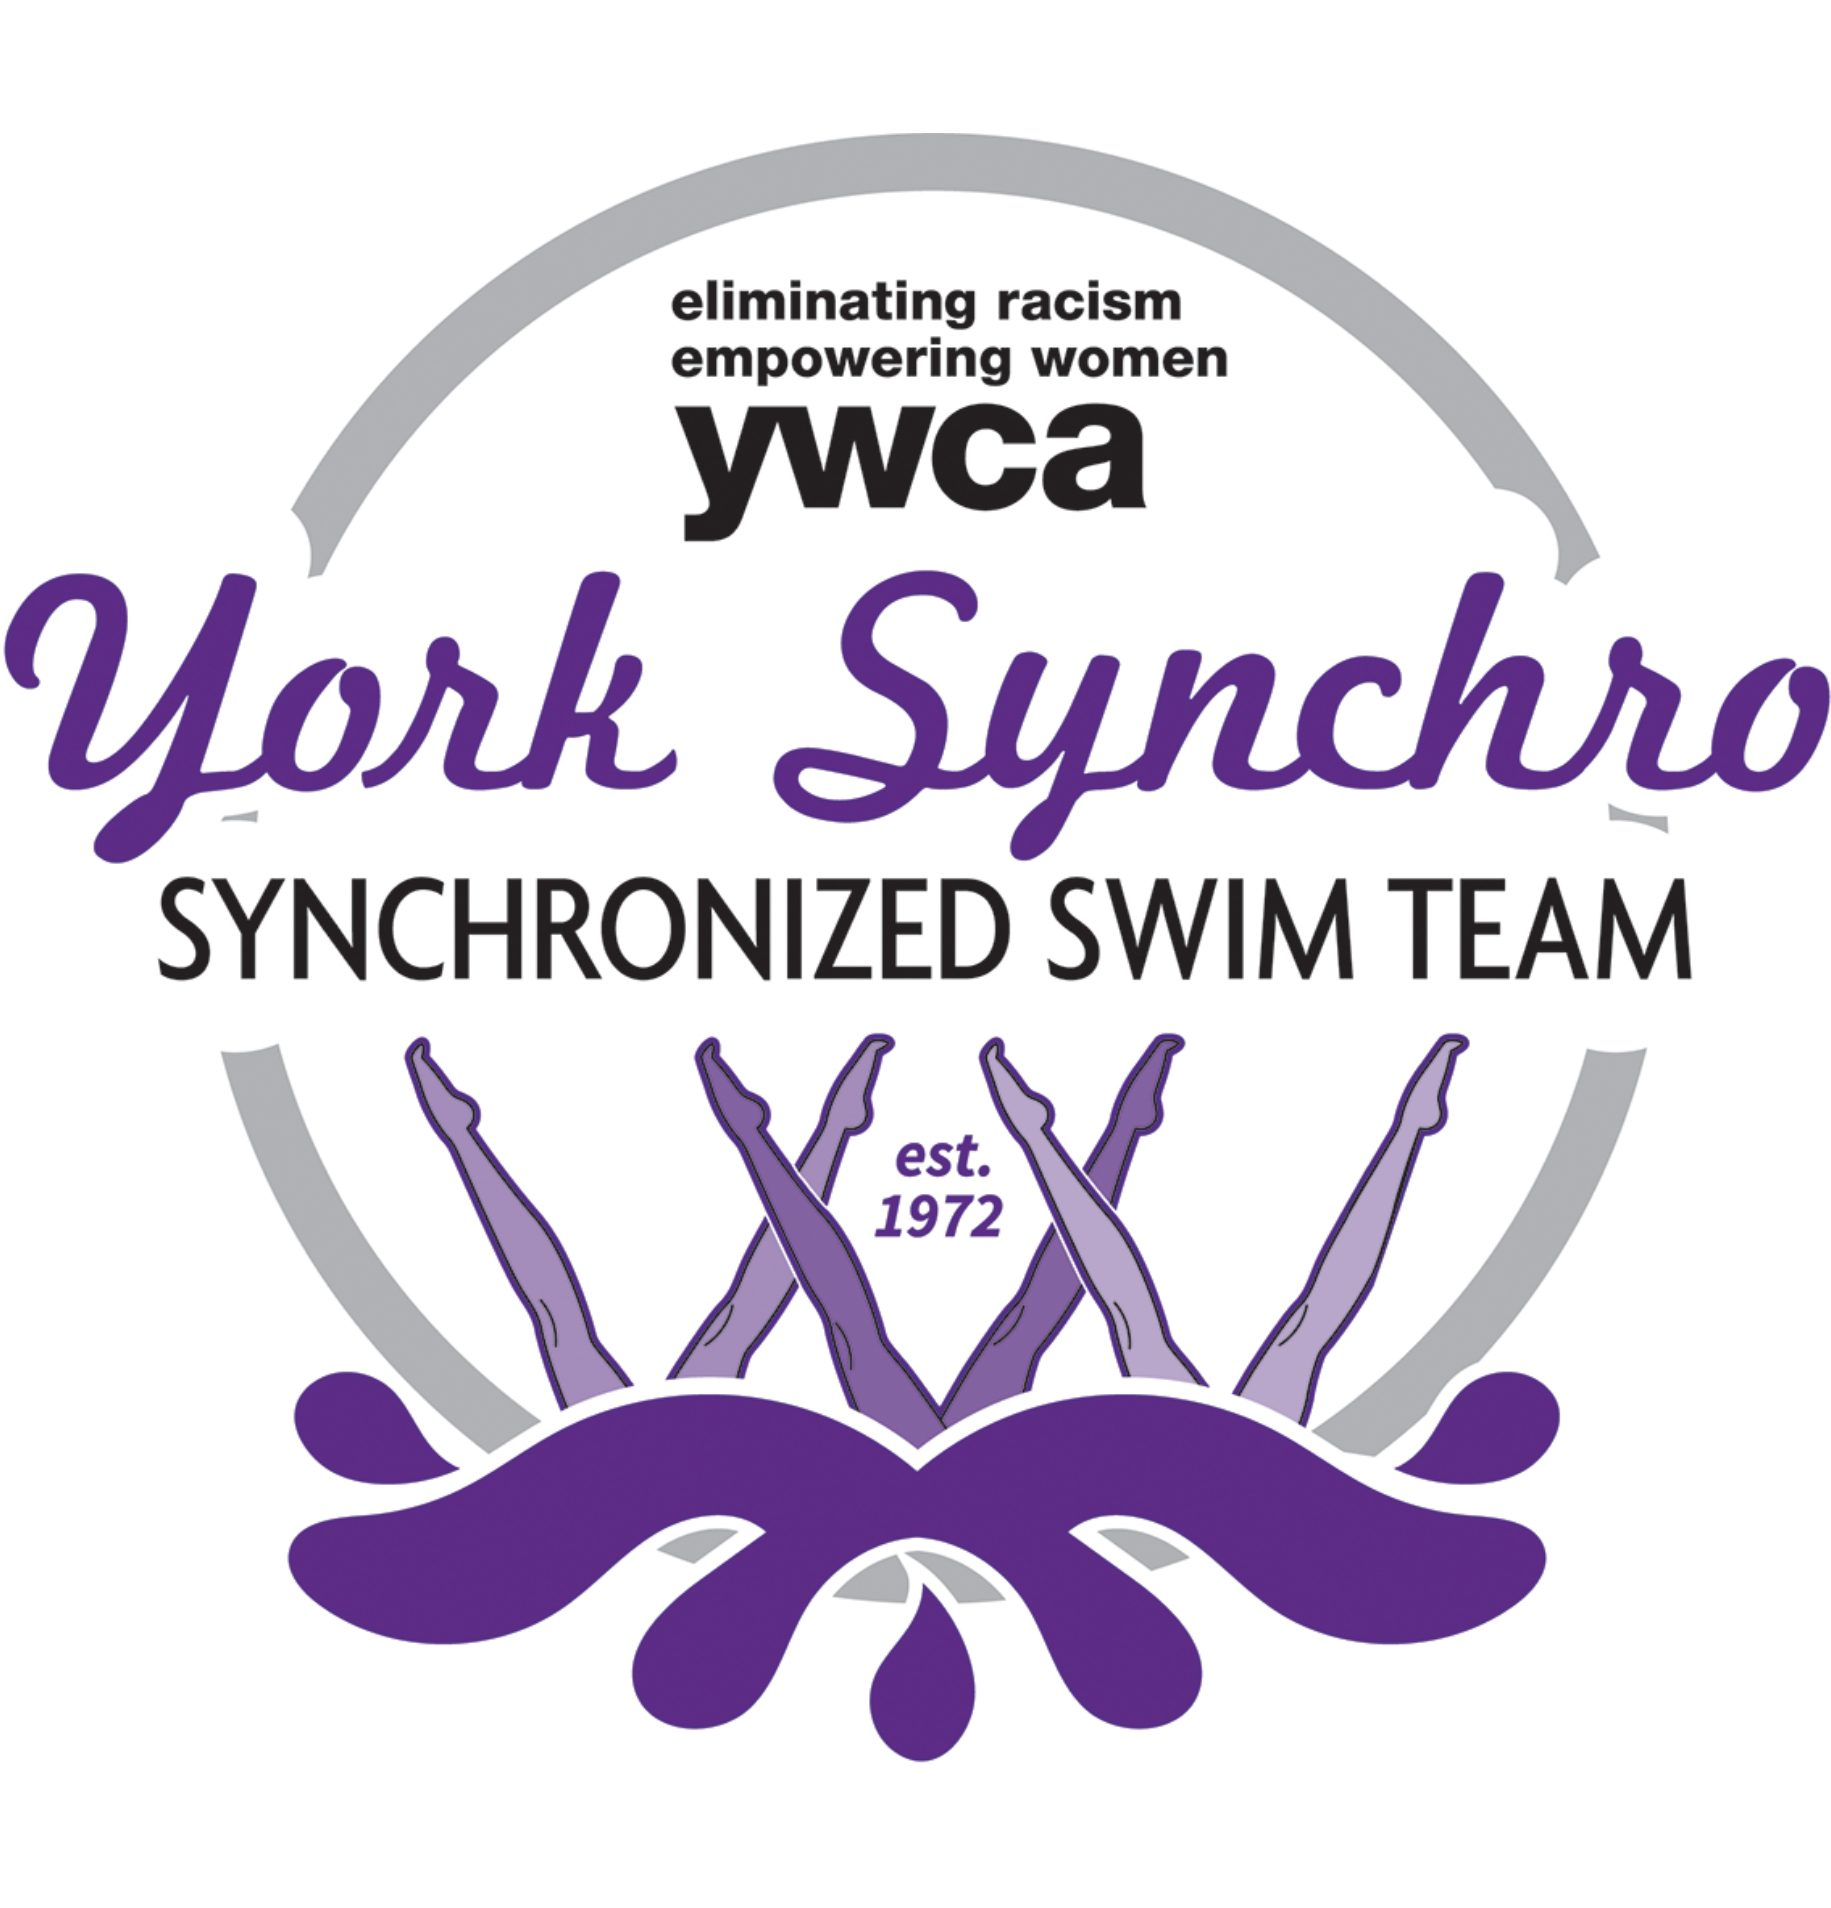 York Synchronized Swim Team